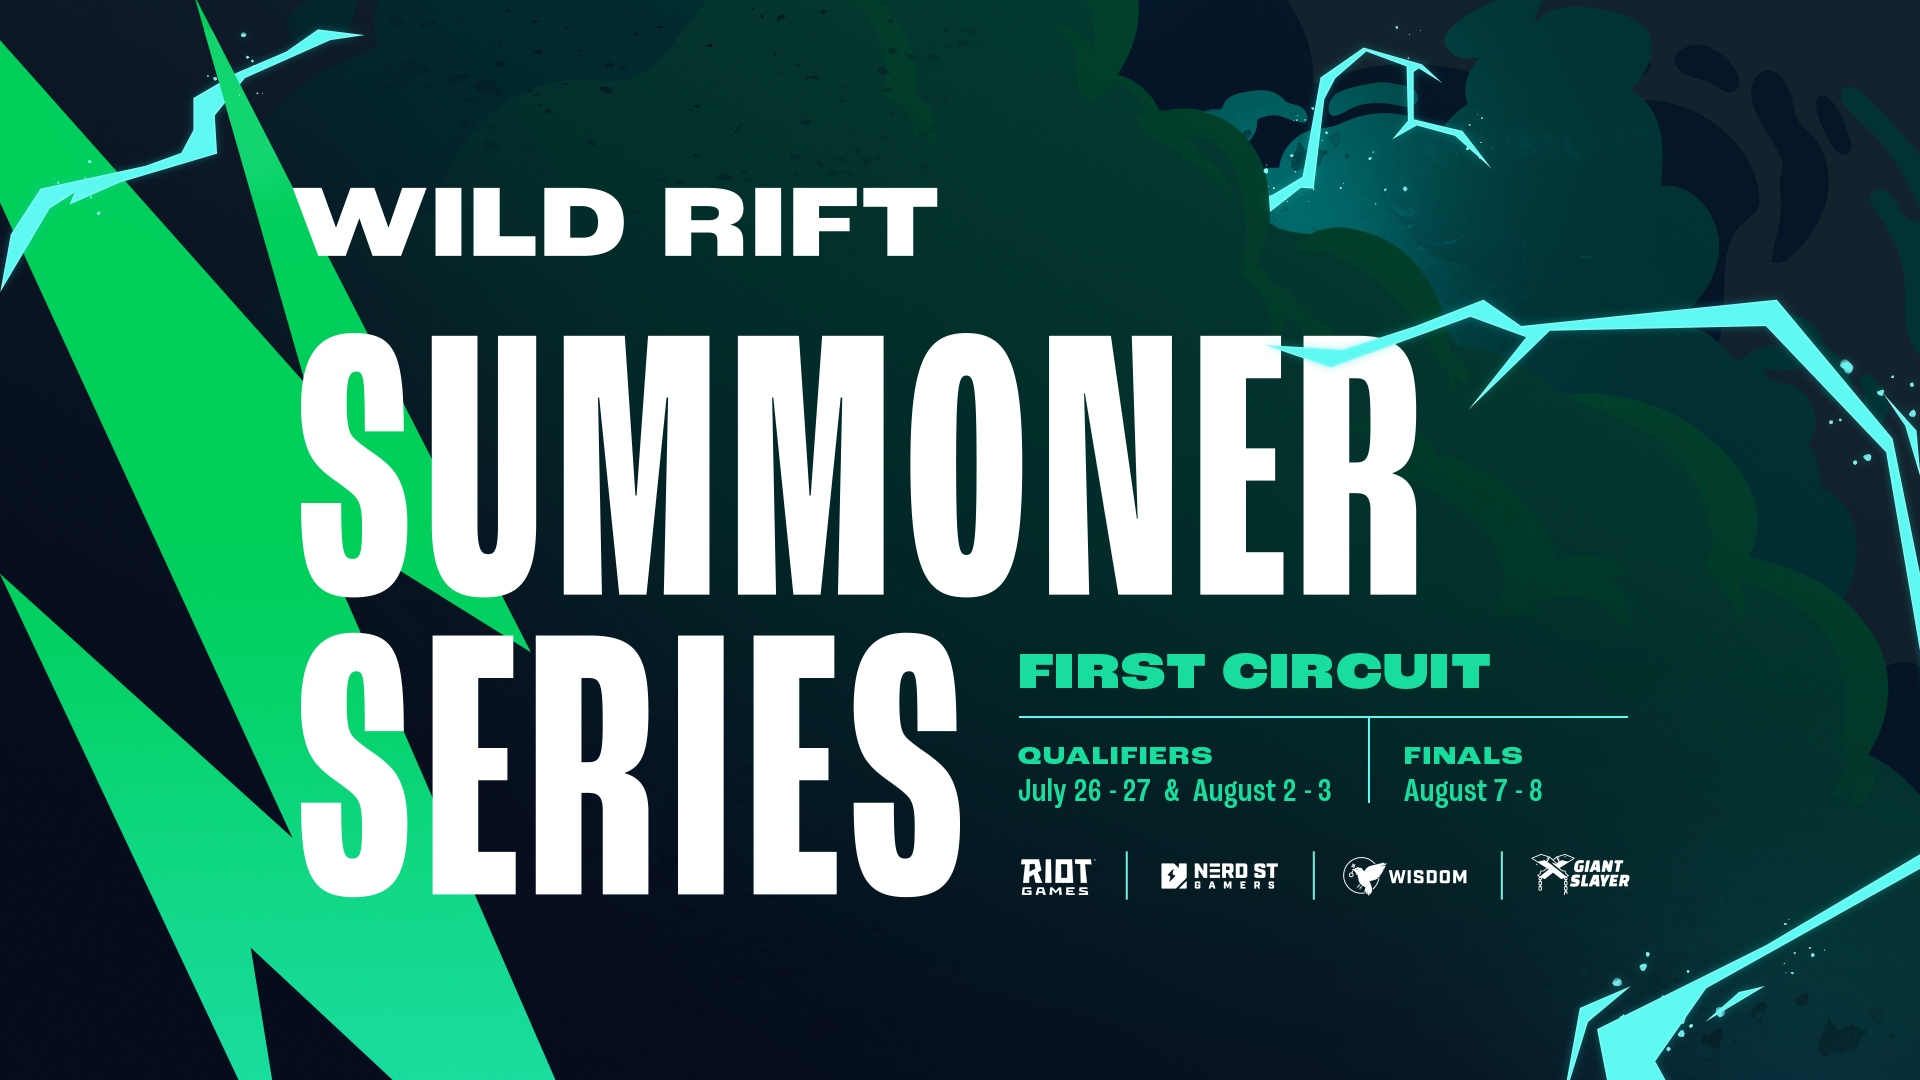 Nerd Street Gamers & Wisdom Gaming Selected to Lead Operations for League of Legends: Wild Rift: Summoner Series